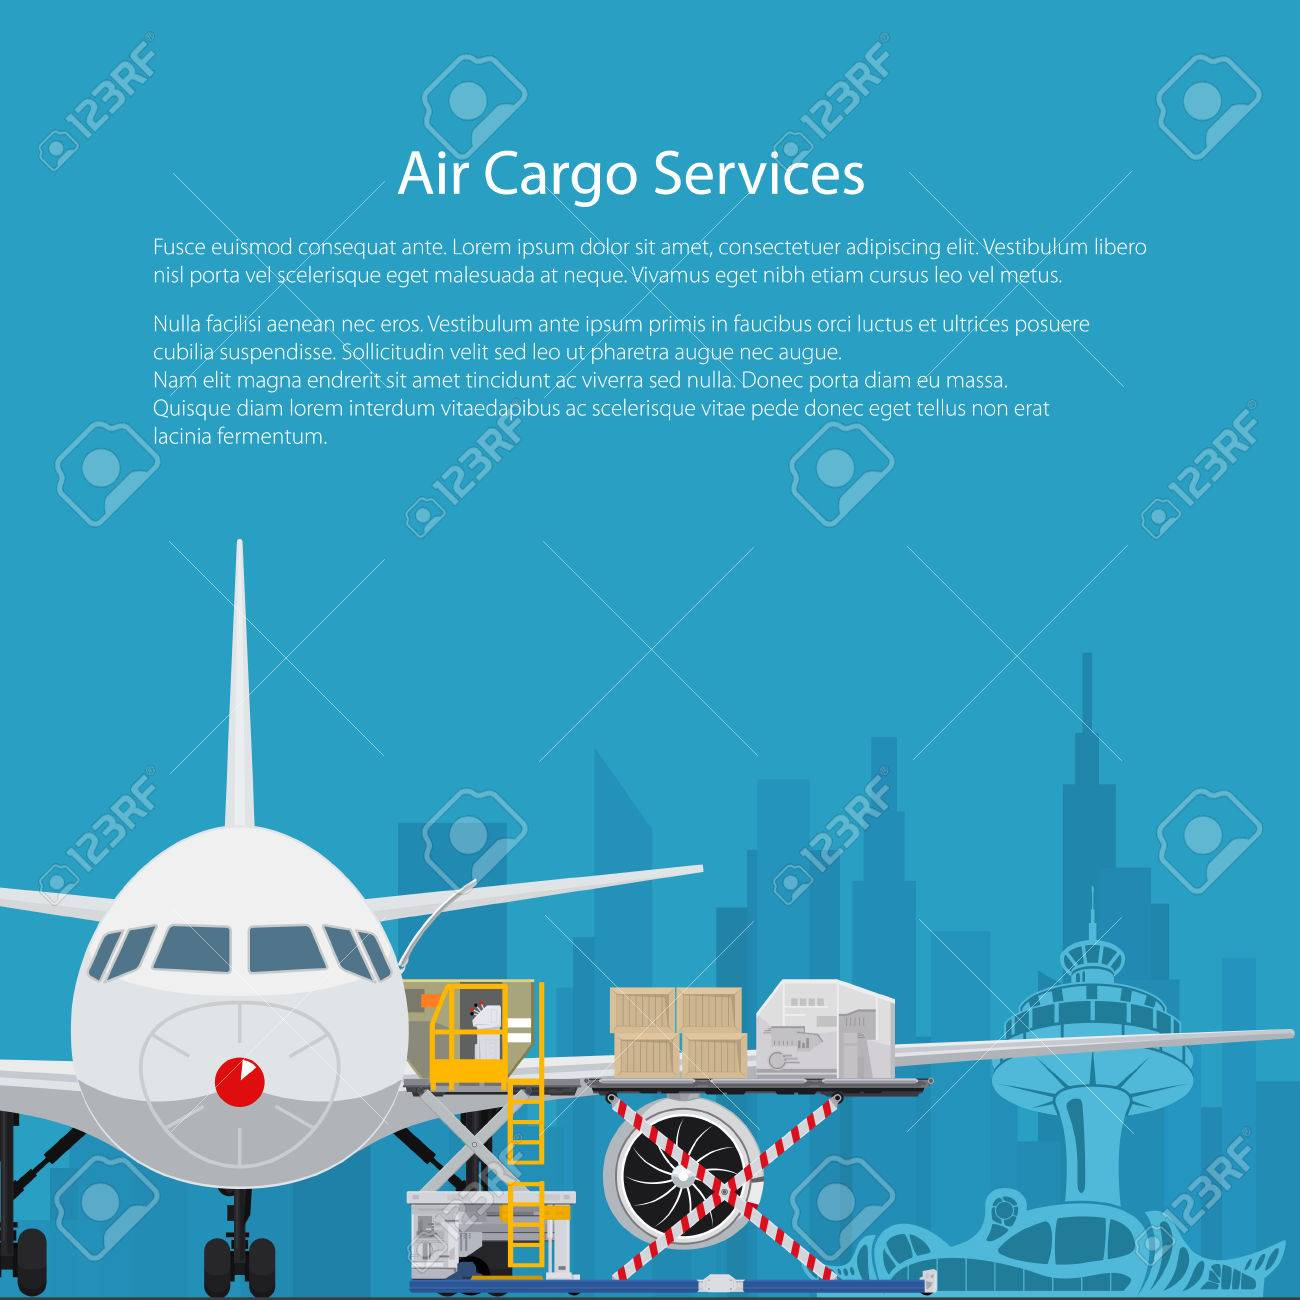 Poster Air Cargo Services And Freight Airplane With Autoloader Royalty Free Cliparts Vectors And Stock Illustration Image 79639782